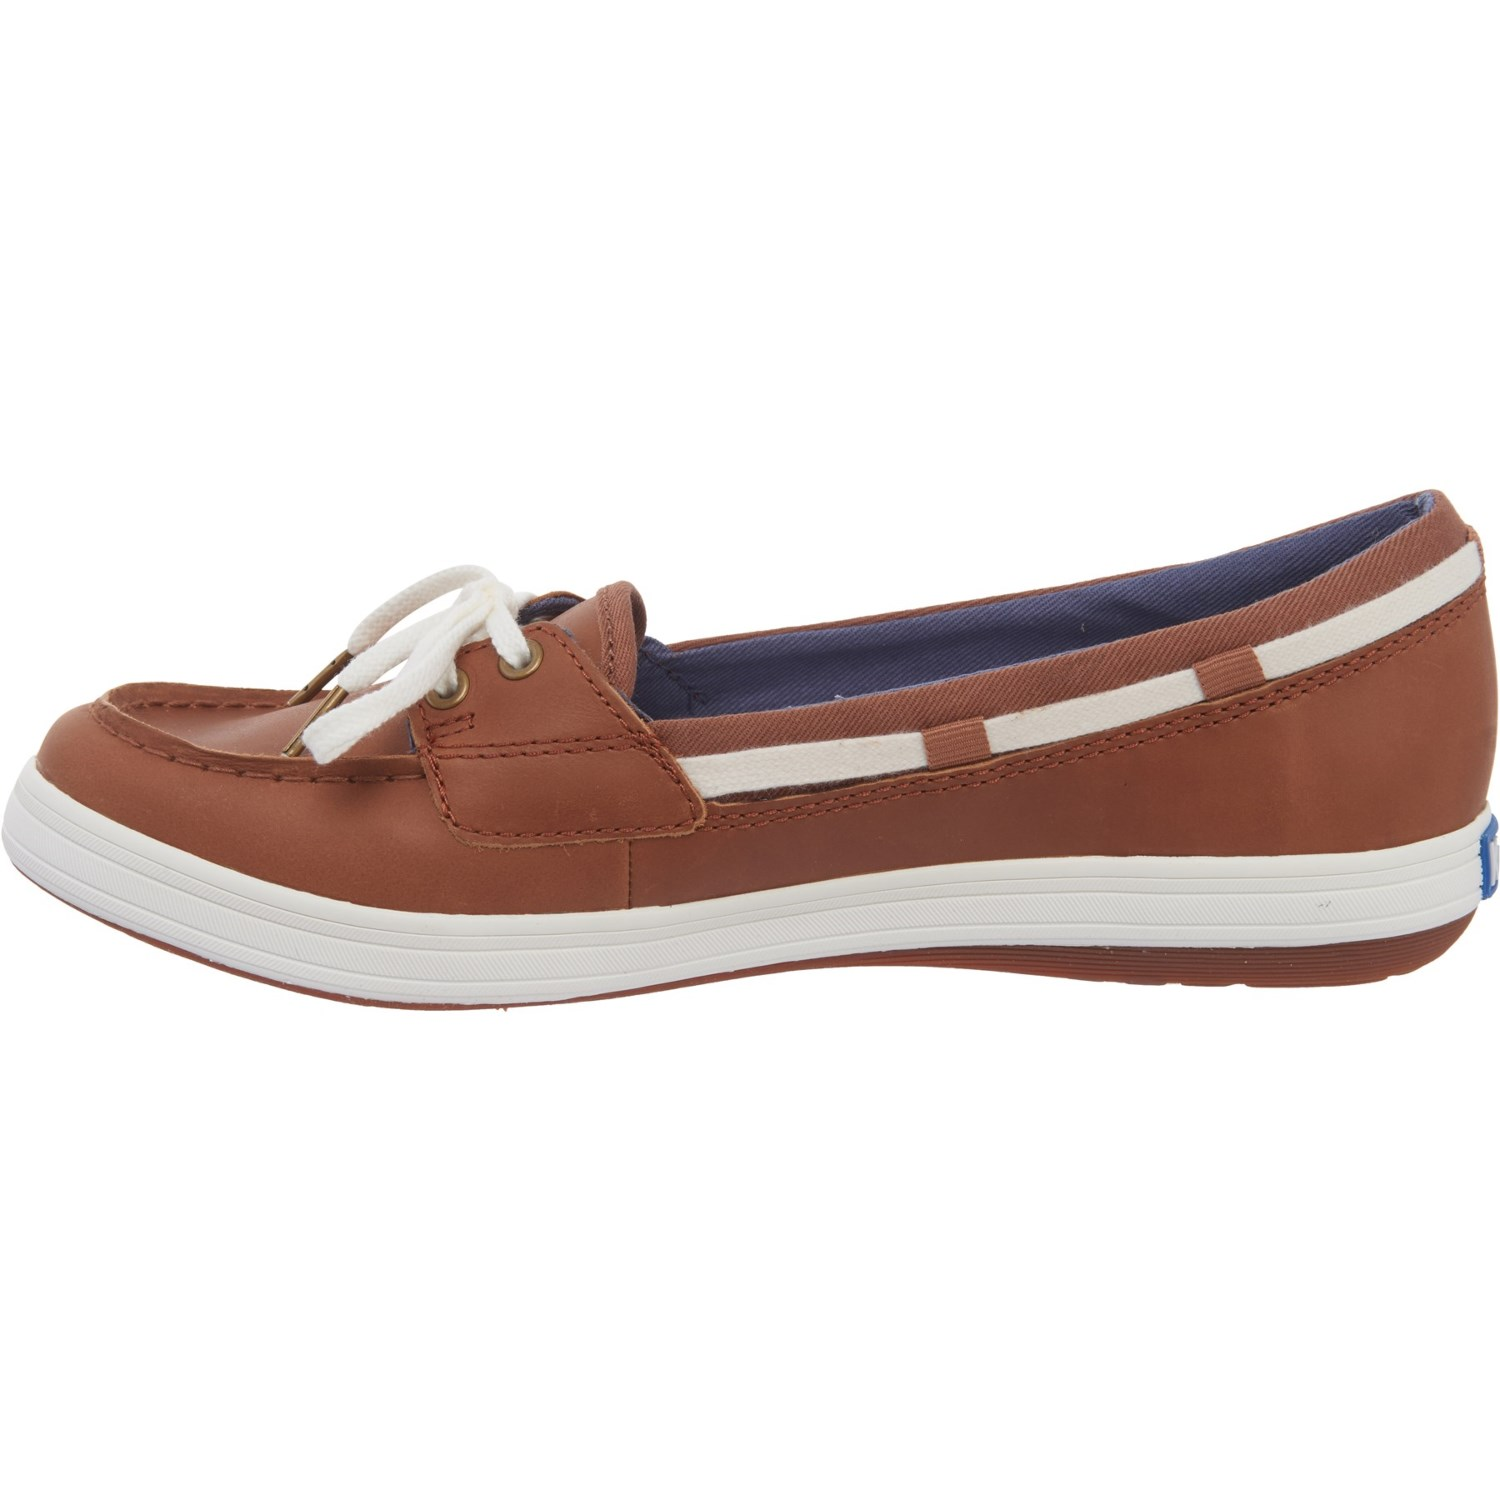 a2bafc34 Keds Glimmer Boat Shoes (For Women) - Save 50%